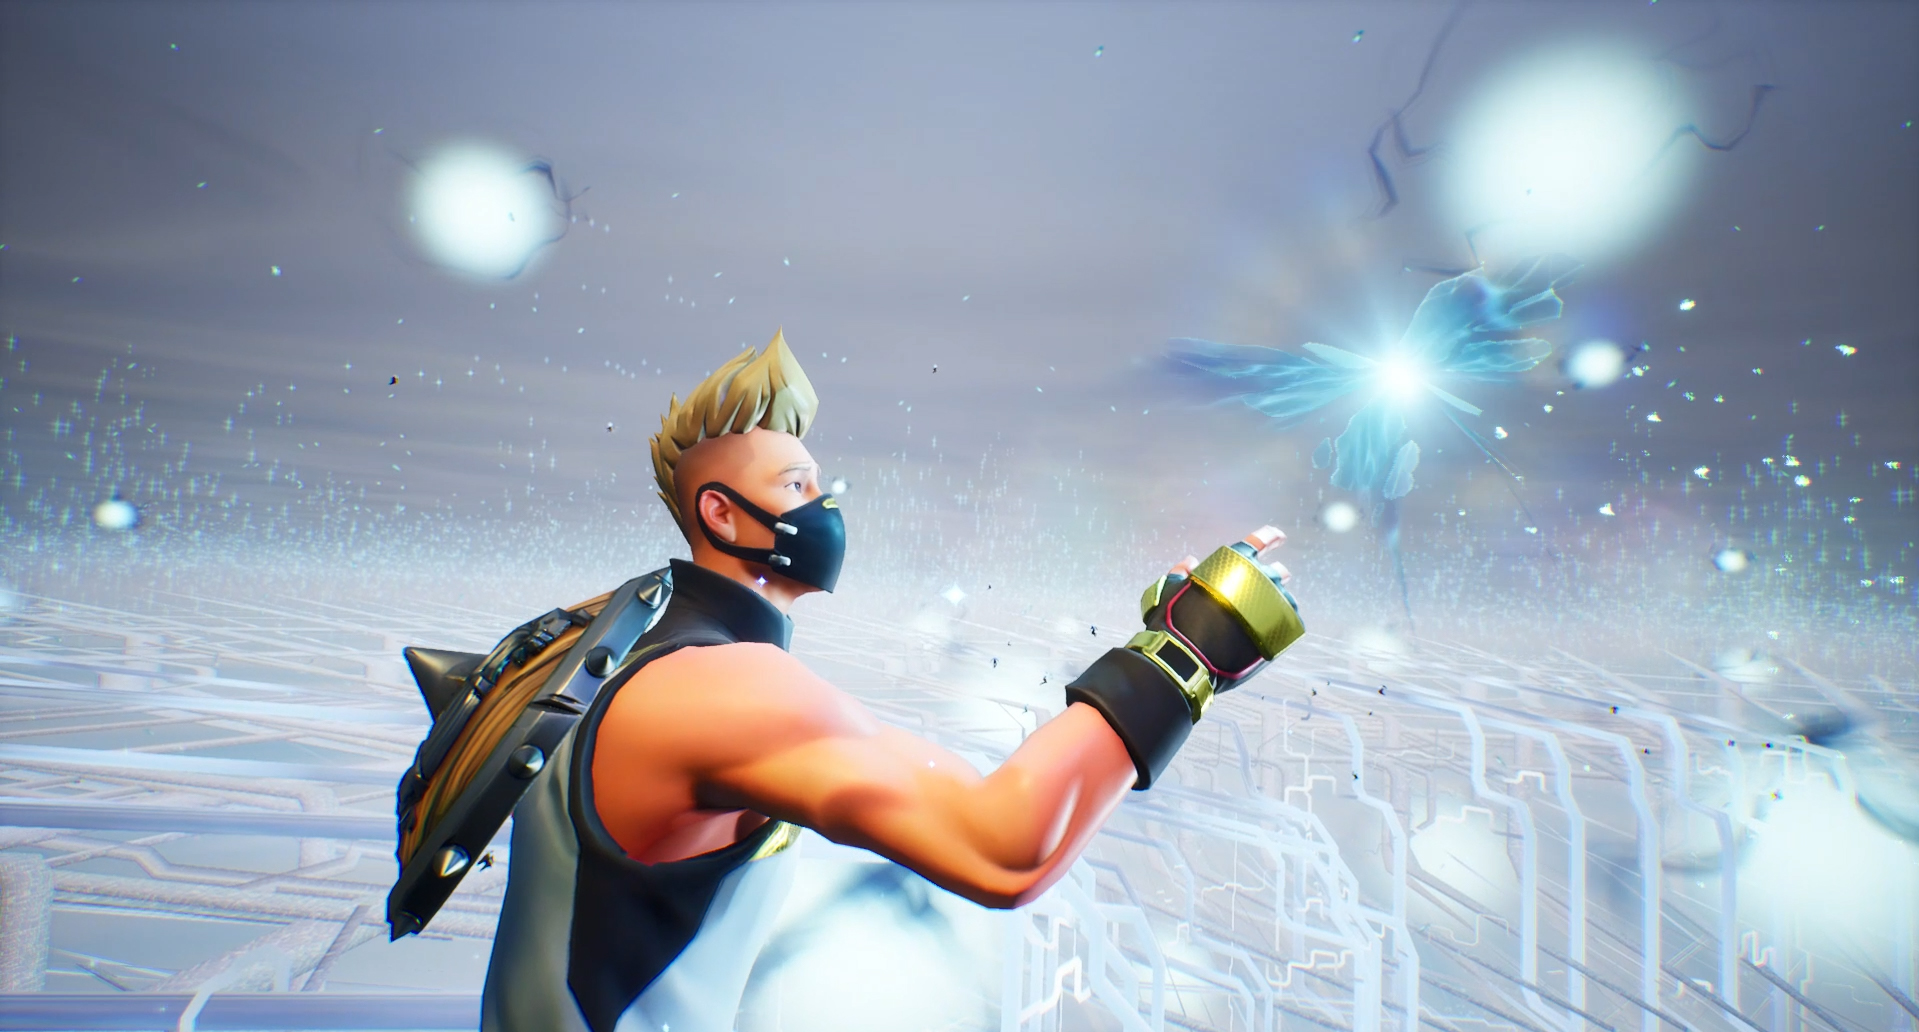 Fortnite S Cube Exploded And Sent Players Into Another Dimension